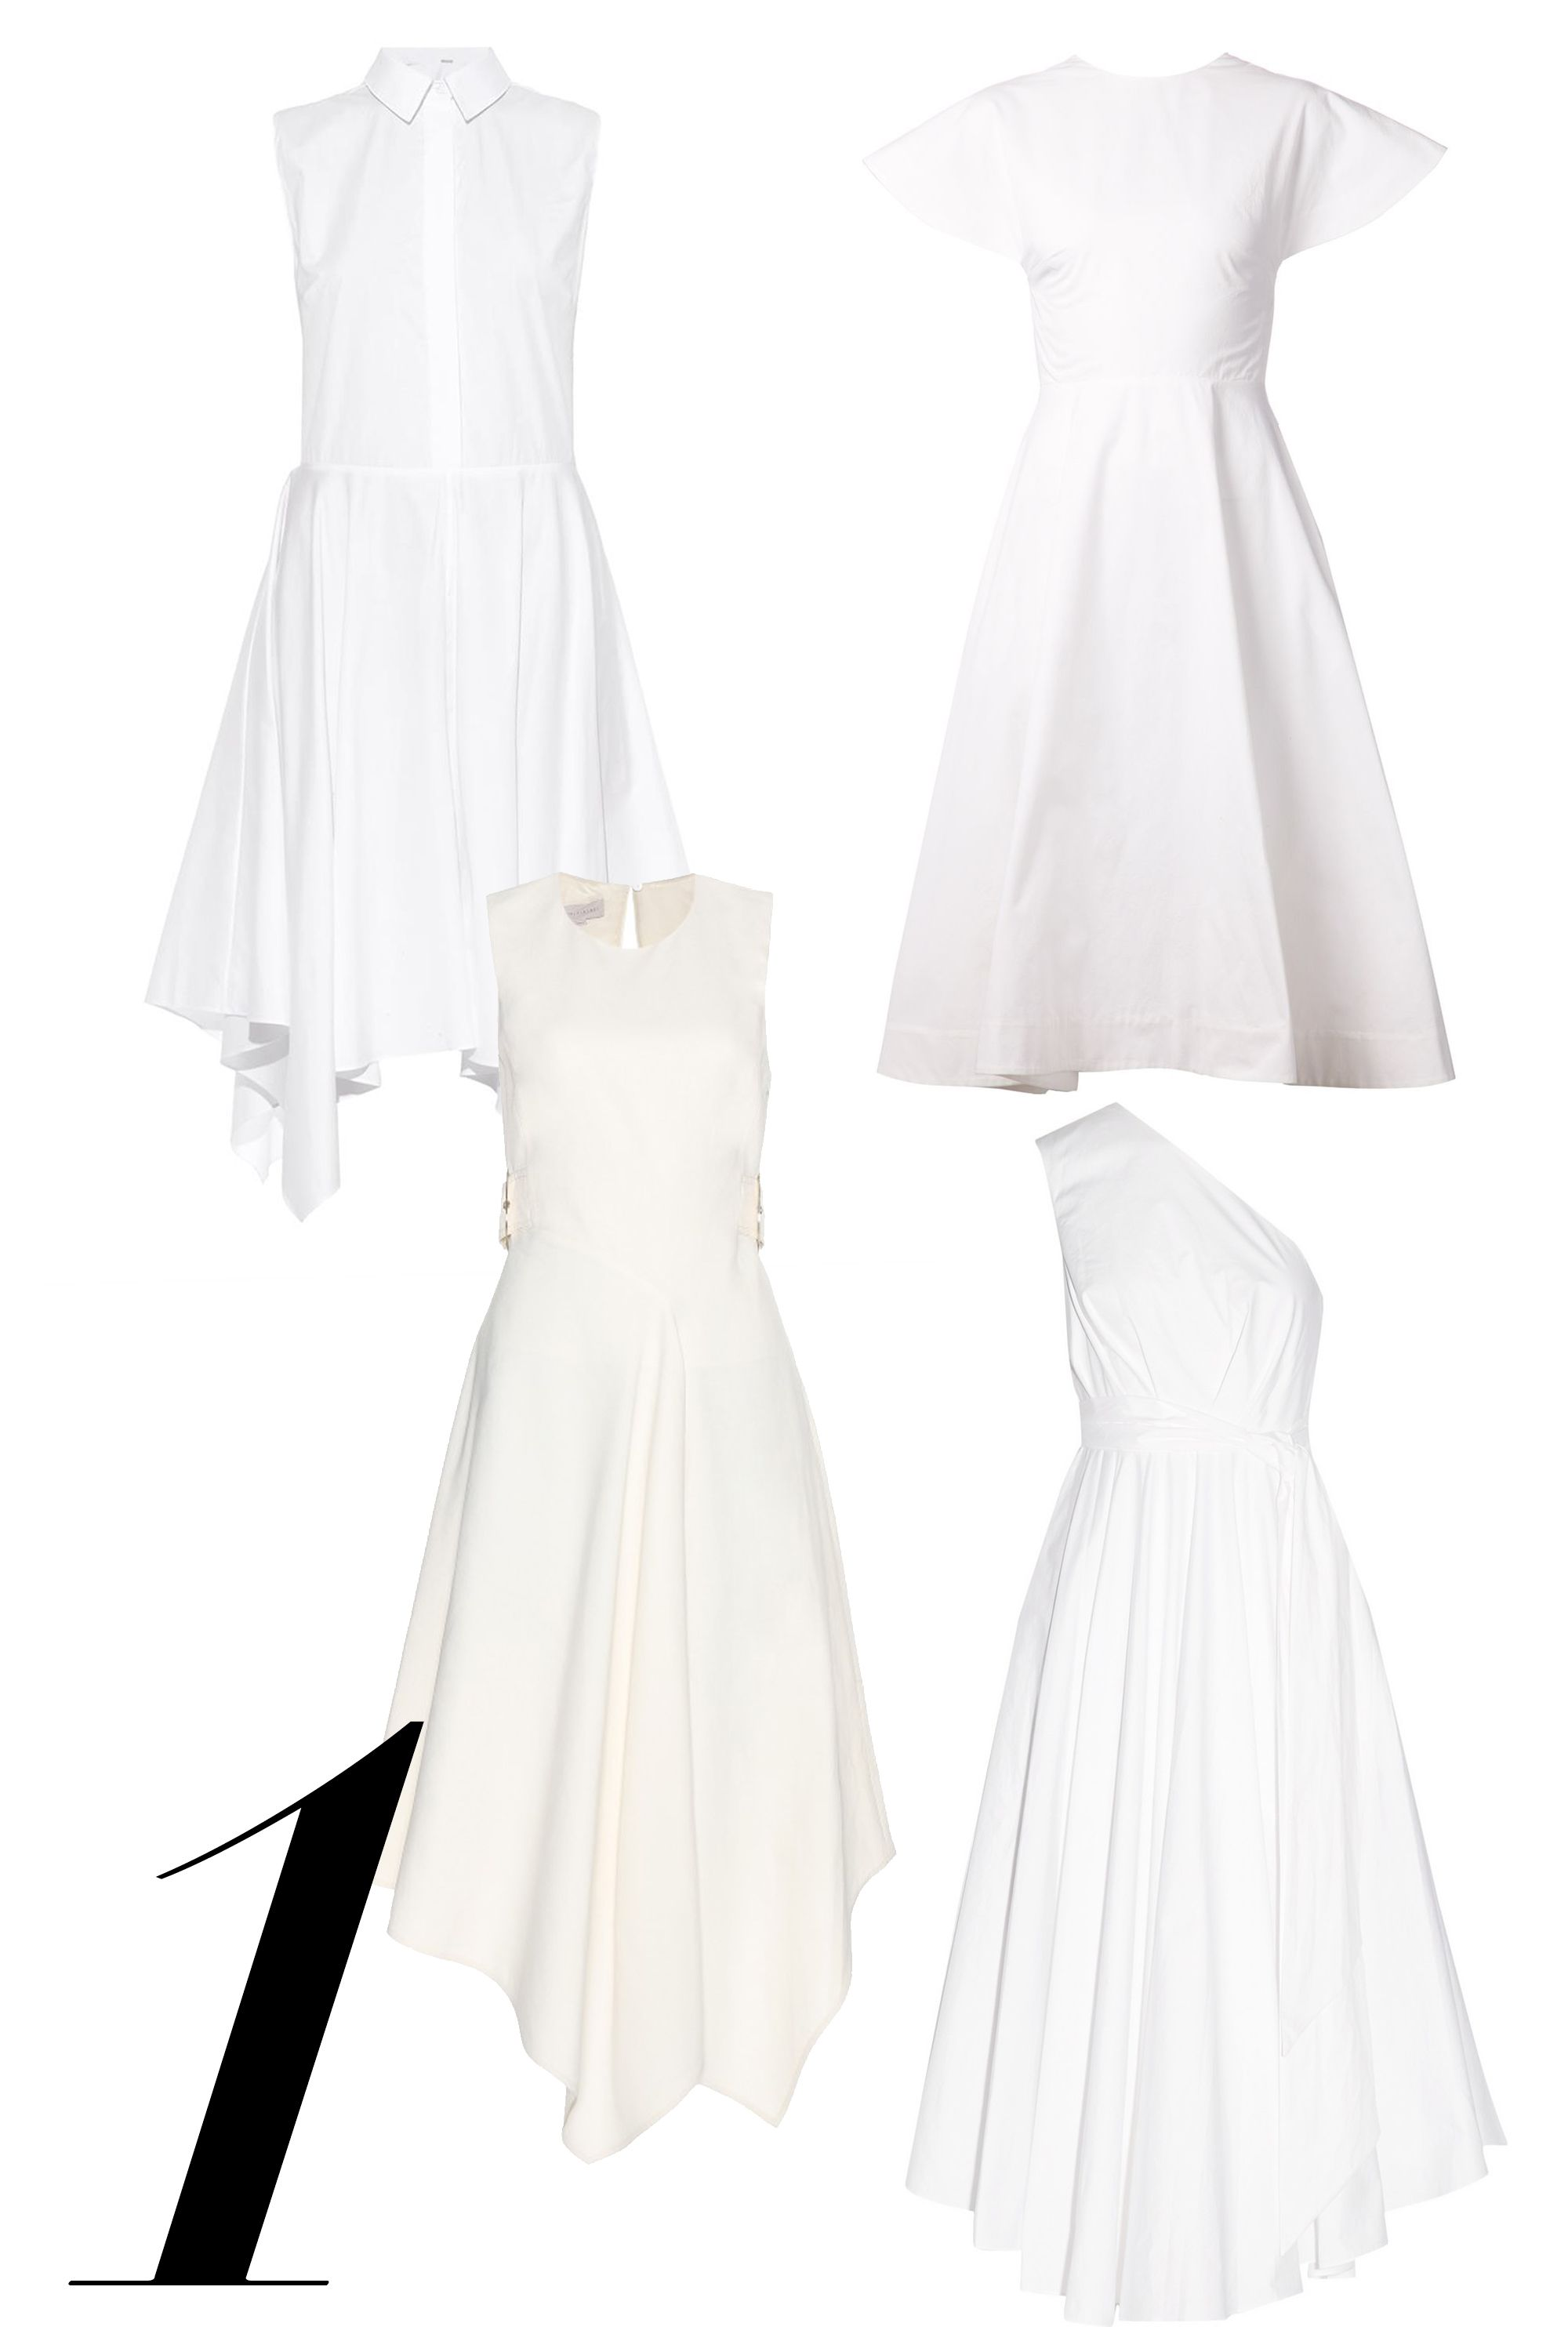 "The little white dress gets a breezy disposition with asymmetrical hemlines and poplin fabrications.   <em>Adam Lippes, $890, <a target=""_blank"" href=""http://www.matchesfashion.com/product/1022445"">matchesfashion.com</a>; </em><em>Rosie Assoulin, $1,995, <a target=""_blank"" href=""http://www.farfetch.com/shopping/women/rosie-assoulin-backless-flared-dress-item-10900864.aspx?storeid=9218&ffref=lp_20_"">farfetch.com</a>; </em><em>Stella McCartney, $1,380, <a target=""_blank"" href=""http://www.mytheresa.com/en-us/crepe-dress-417230.html"">mytheresa.com</a>; </em><em>Tibi, $625, <a target=""_blank"" href=""http://www.net-a-porter.com/product/536399/Tibi/one-shoulder-cotton-poplin-dress"">net-a-porter.com</a></em>"